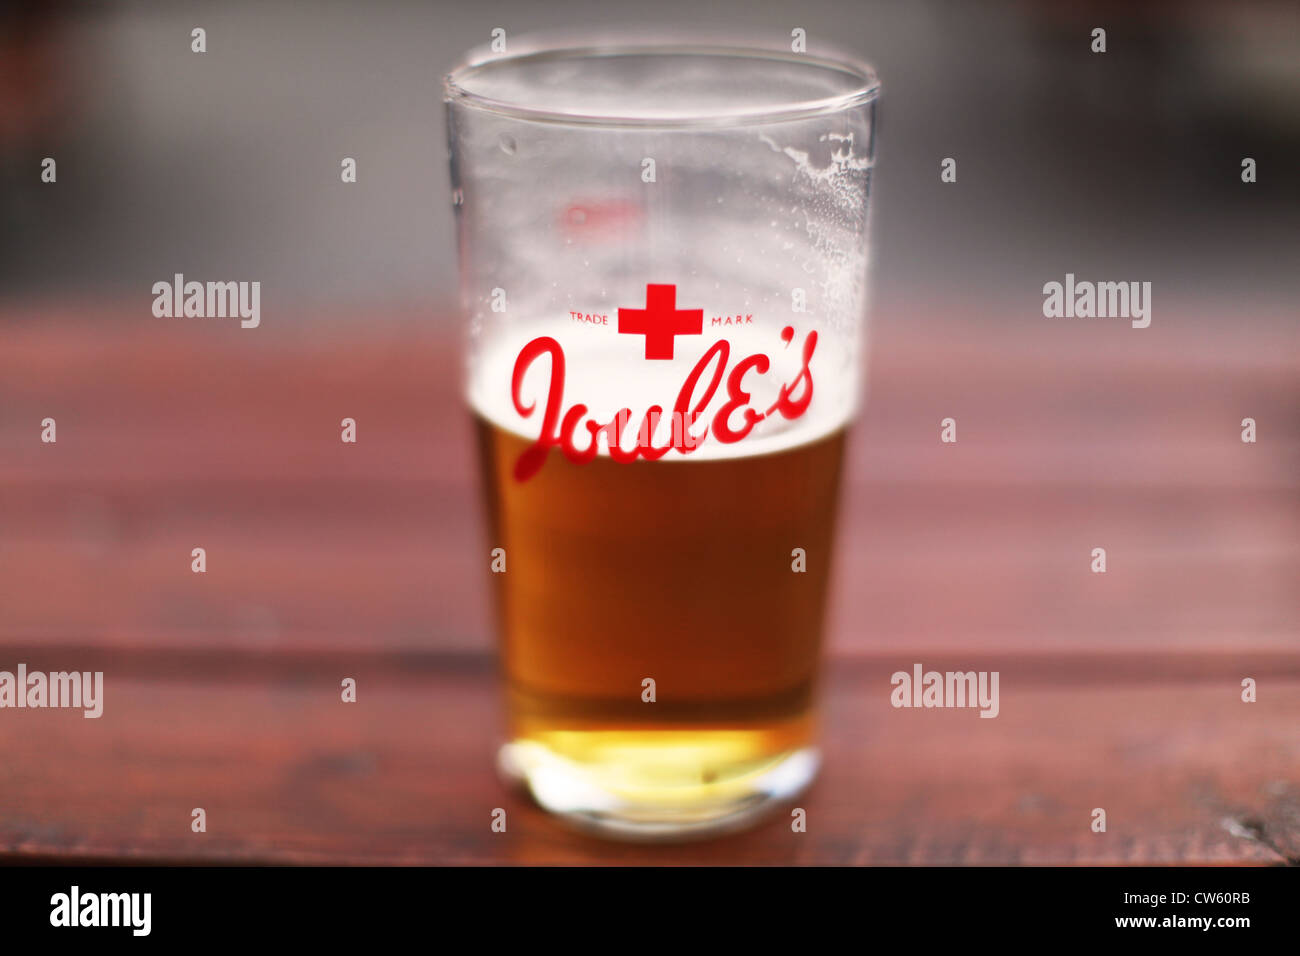 A pint glass with Joules beer on a pub table - Stock Image